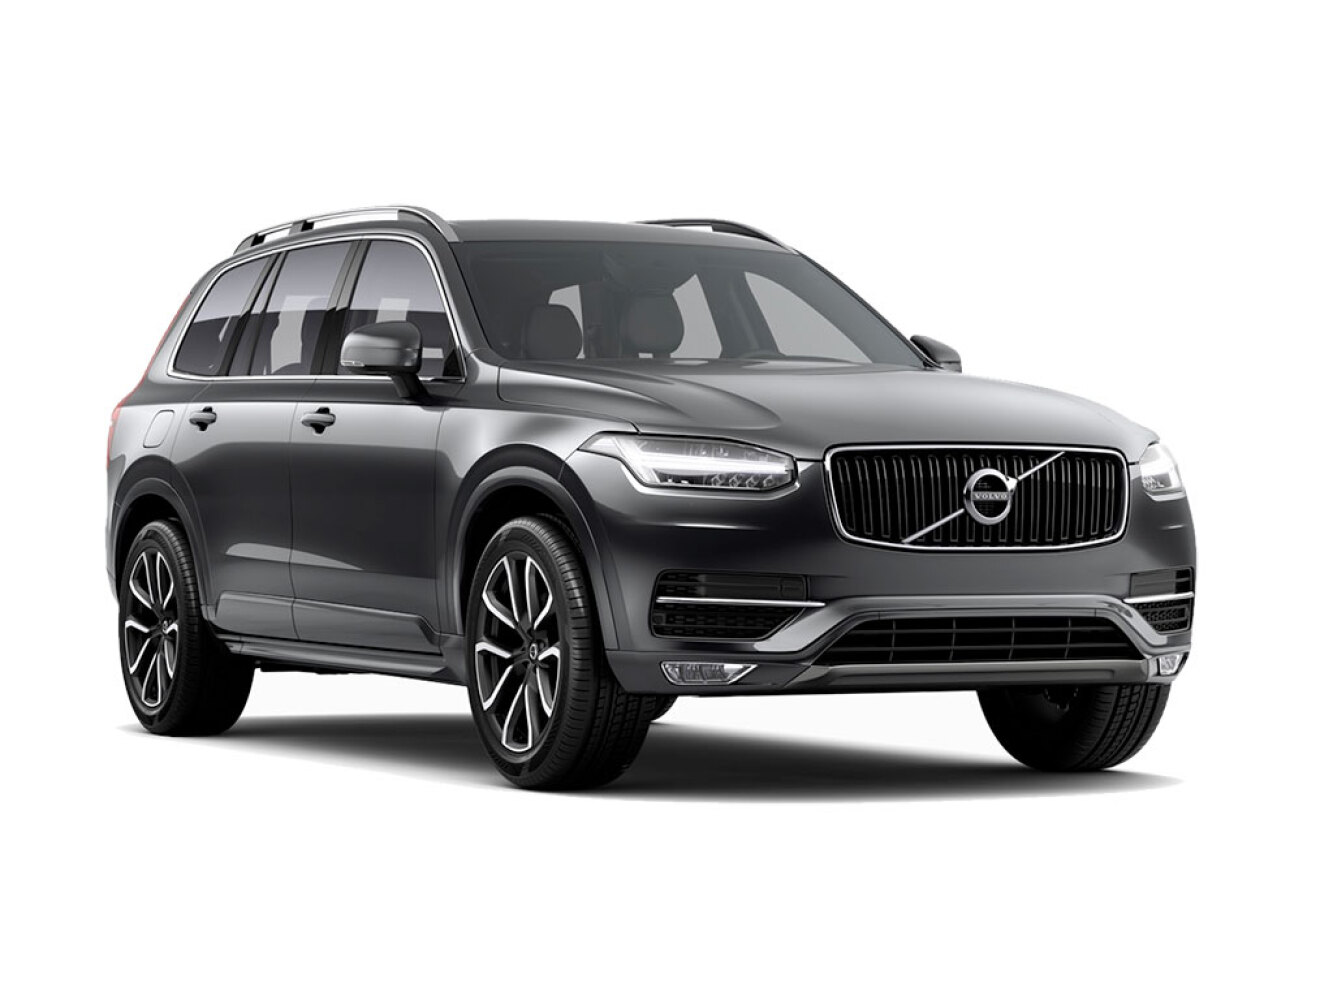 new volvo xc90 2 0 d5 powerpulse momentum pro 5dr awd geartronic diesel estate for sale. Black Bedroom Furniture Sets. Home Design Ideas